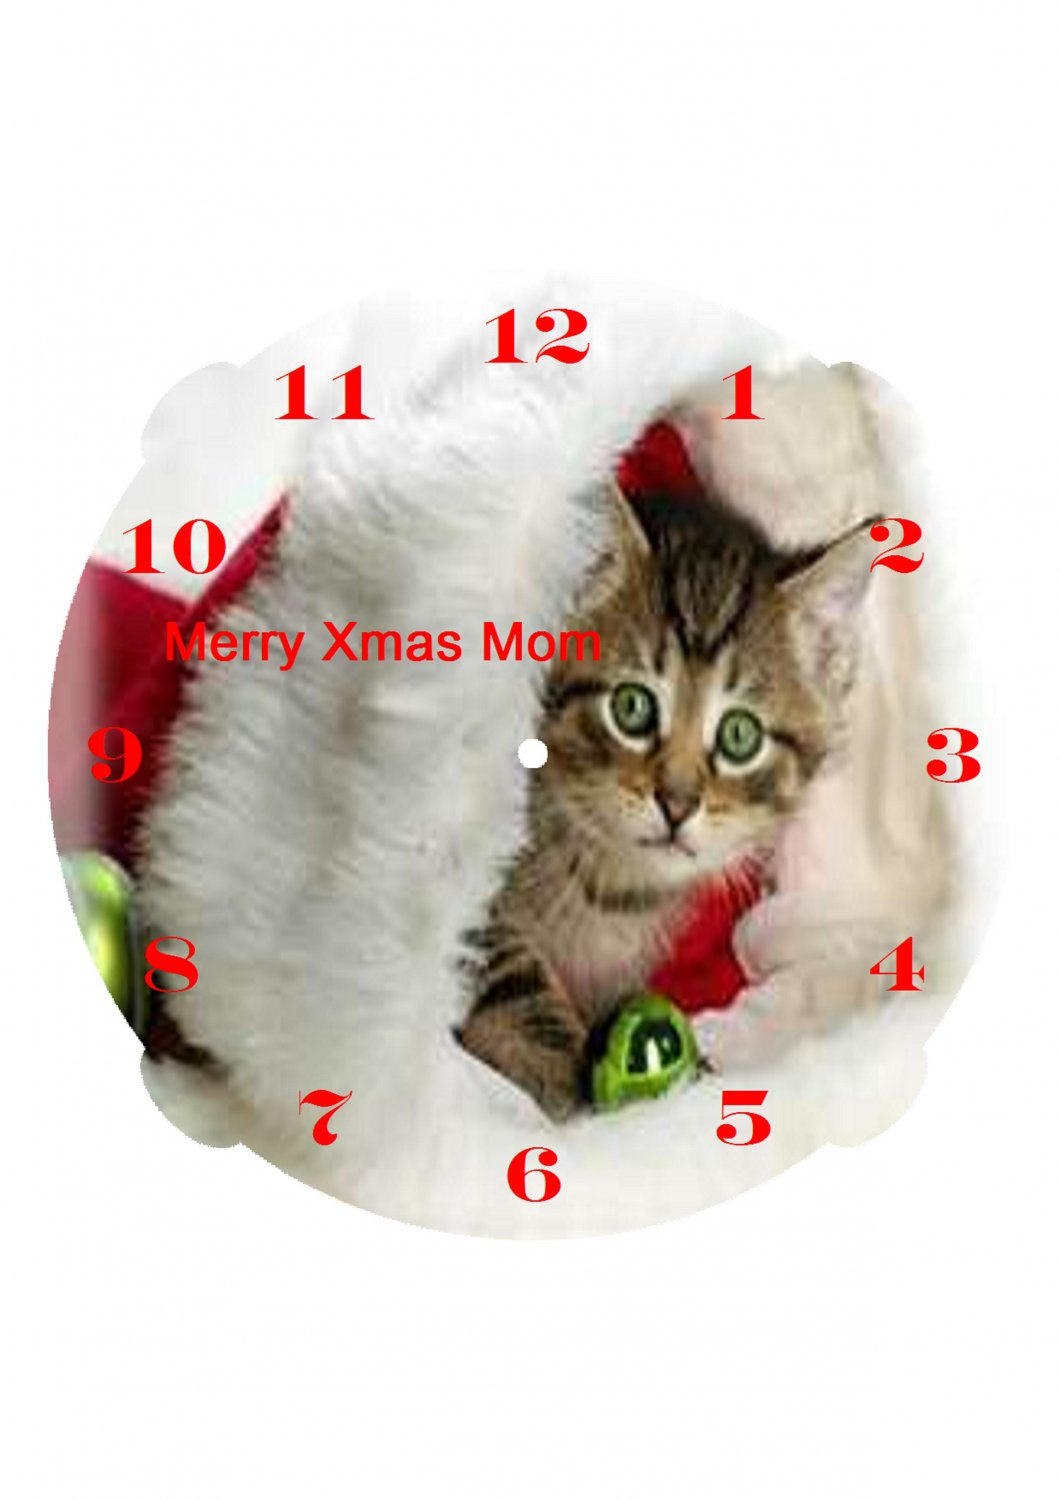 The Have a very Merry Christmas clock